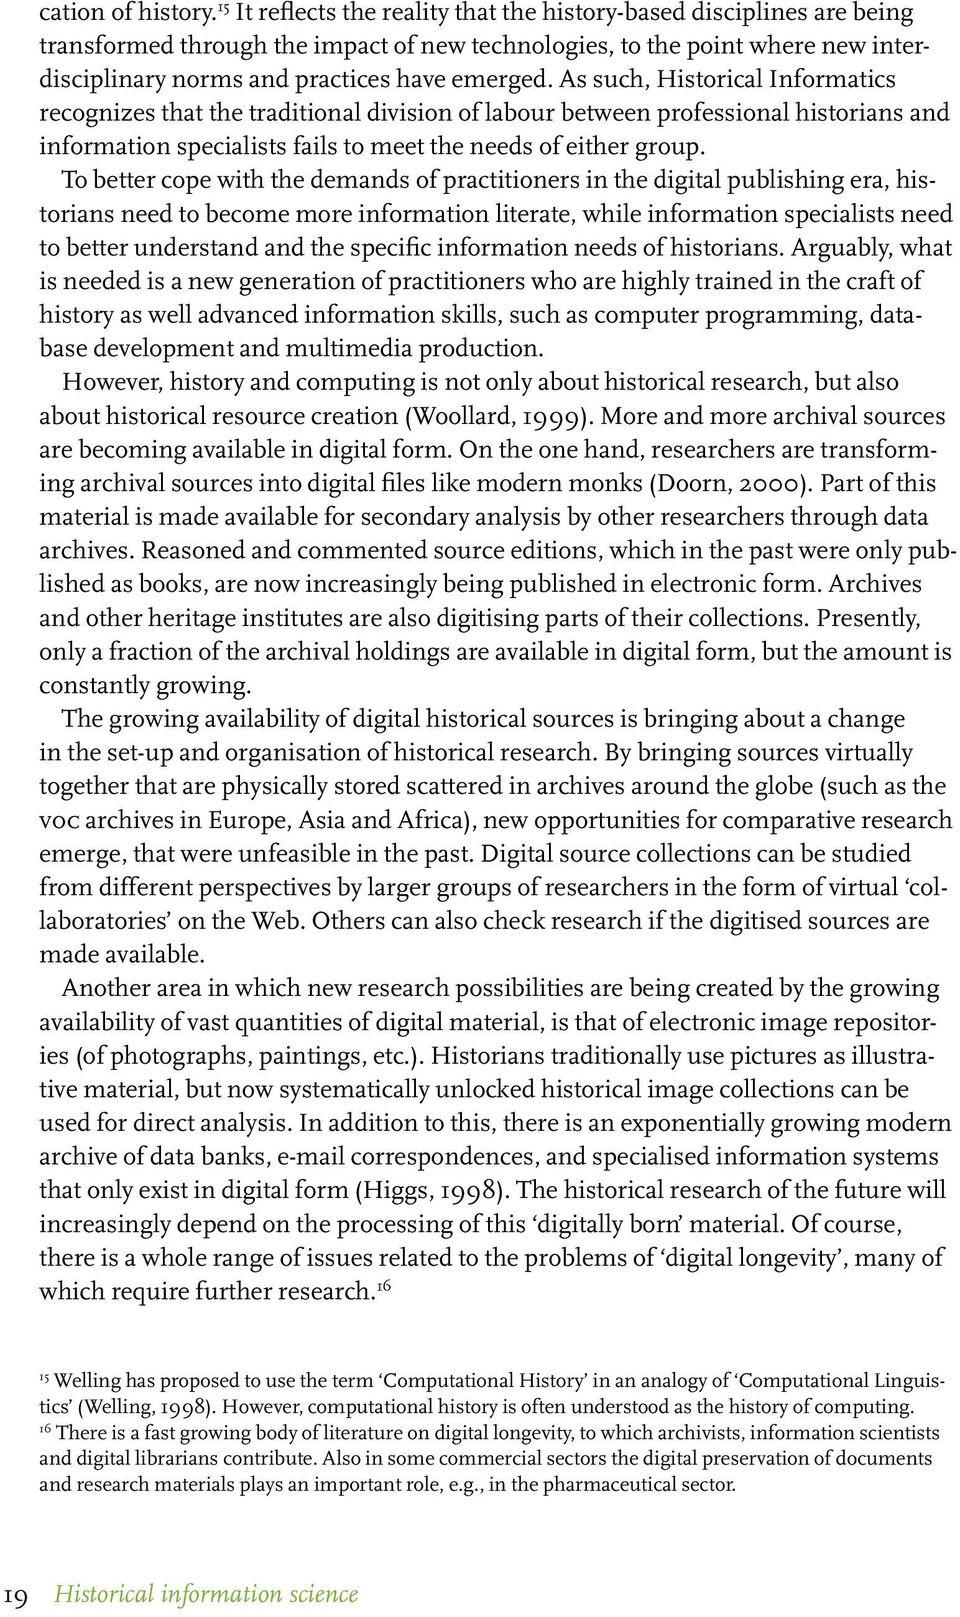 As such, Historical Informatics recognizes that the traditional division of labour between professional historians and information specialists fails to meet the needs of either group.